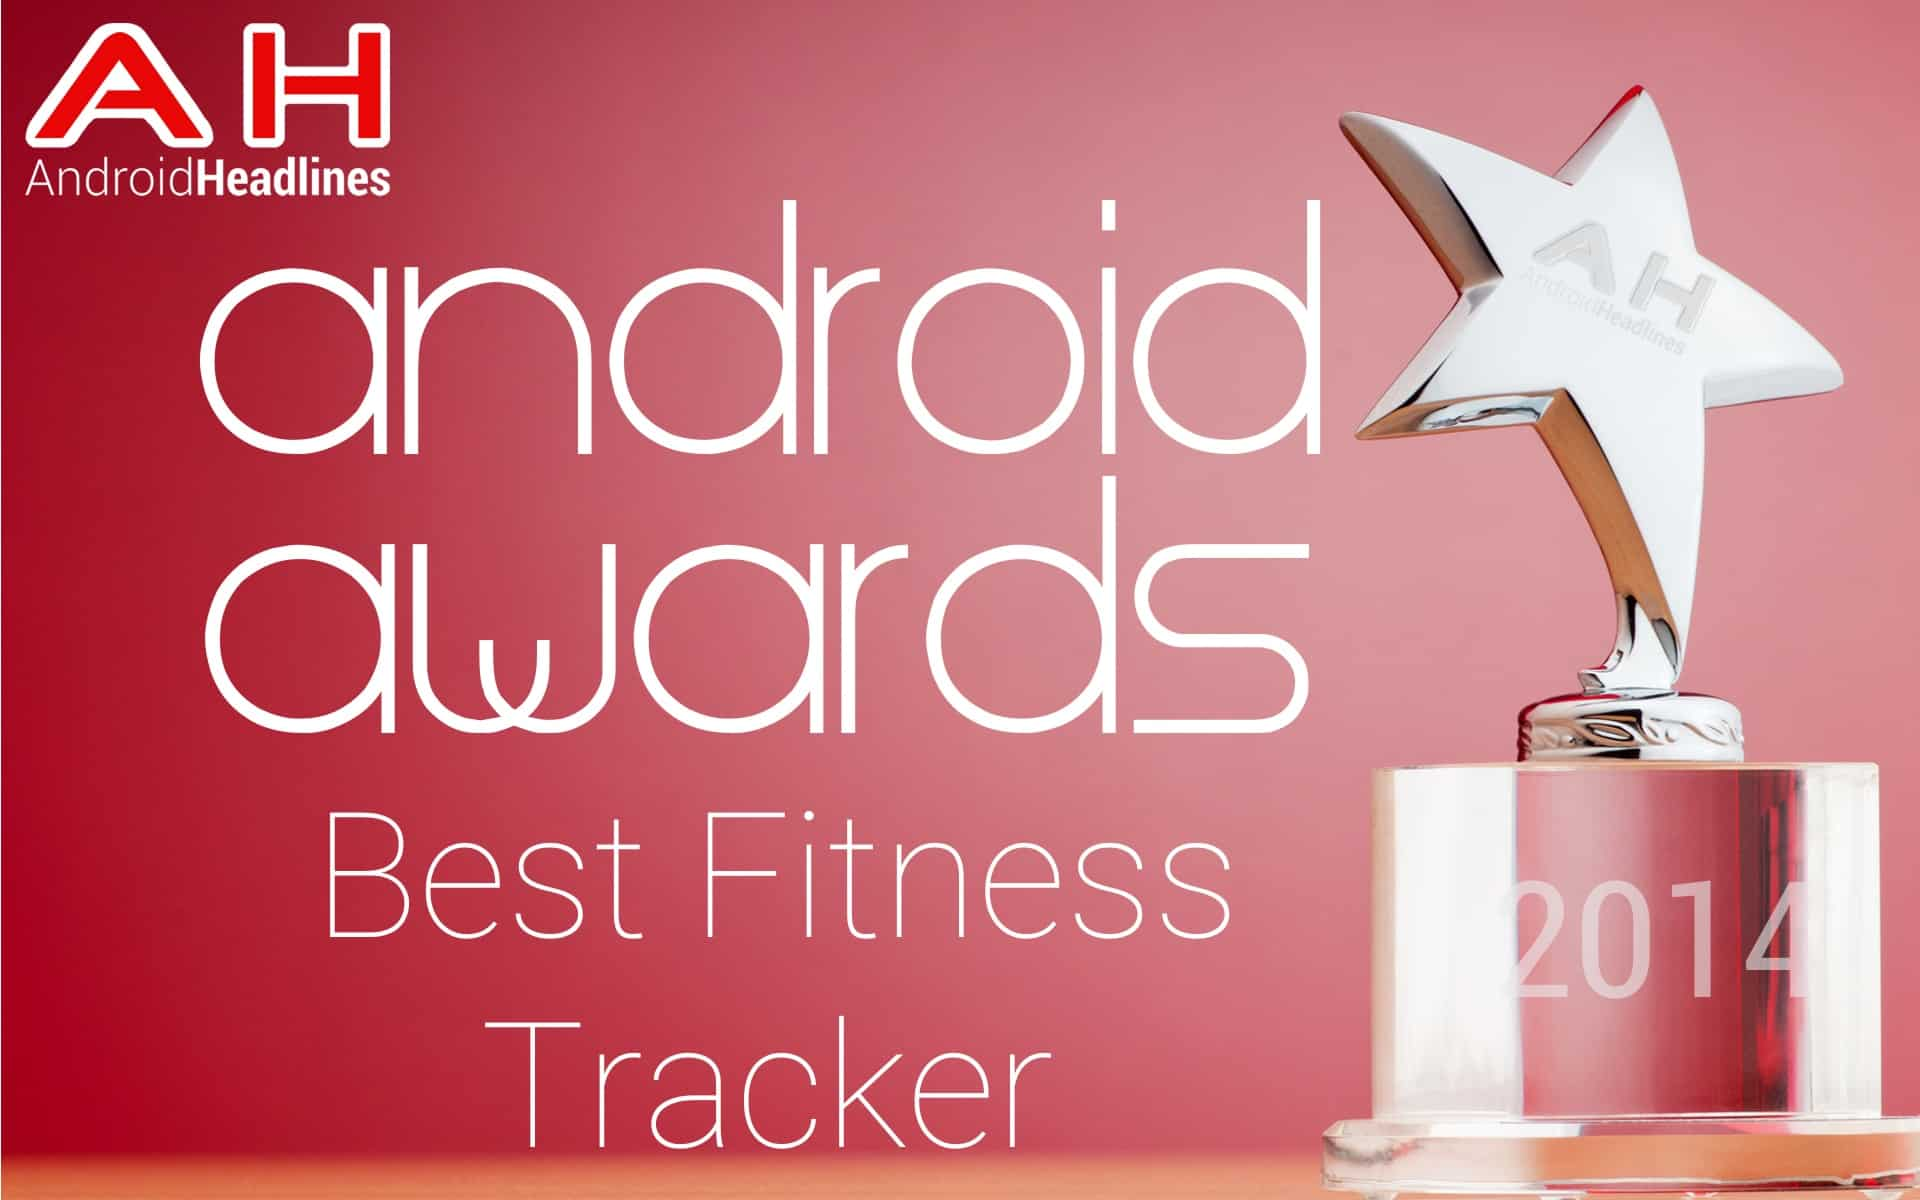 AH Awards 2014 Best Android Fitness Tracker of the year